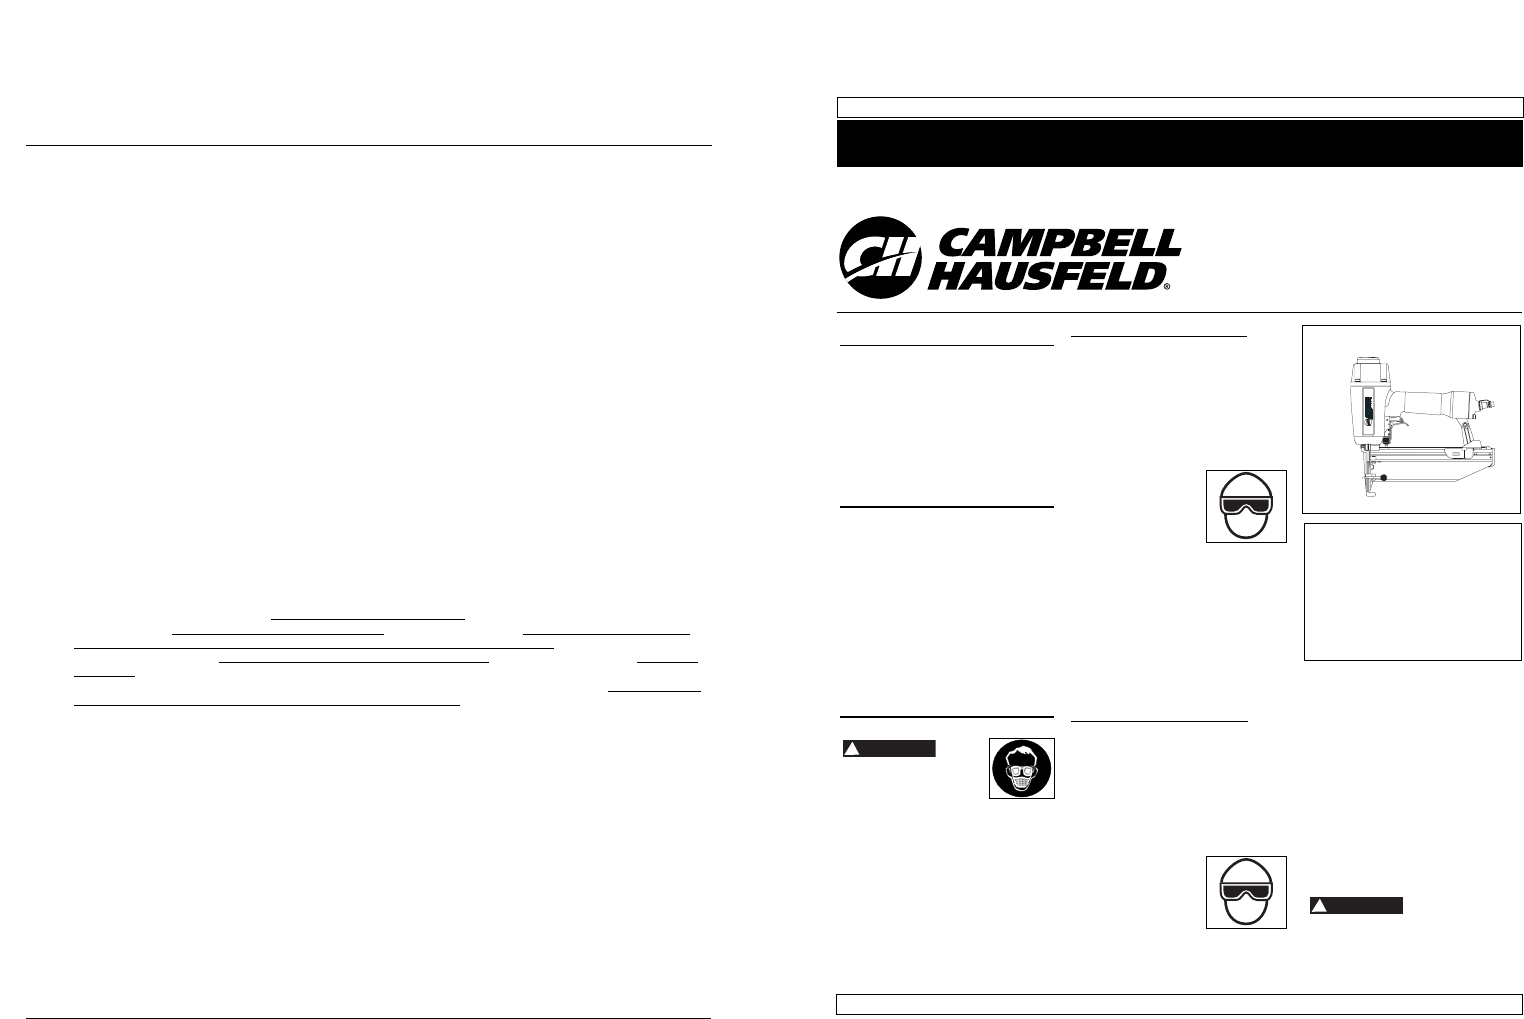 Campbell Hausfeld Nail Gun NB006401 User Guide